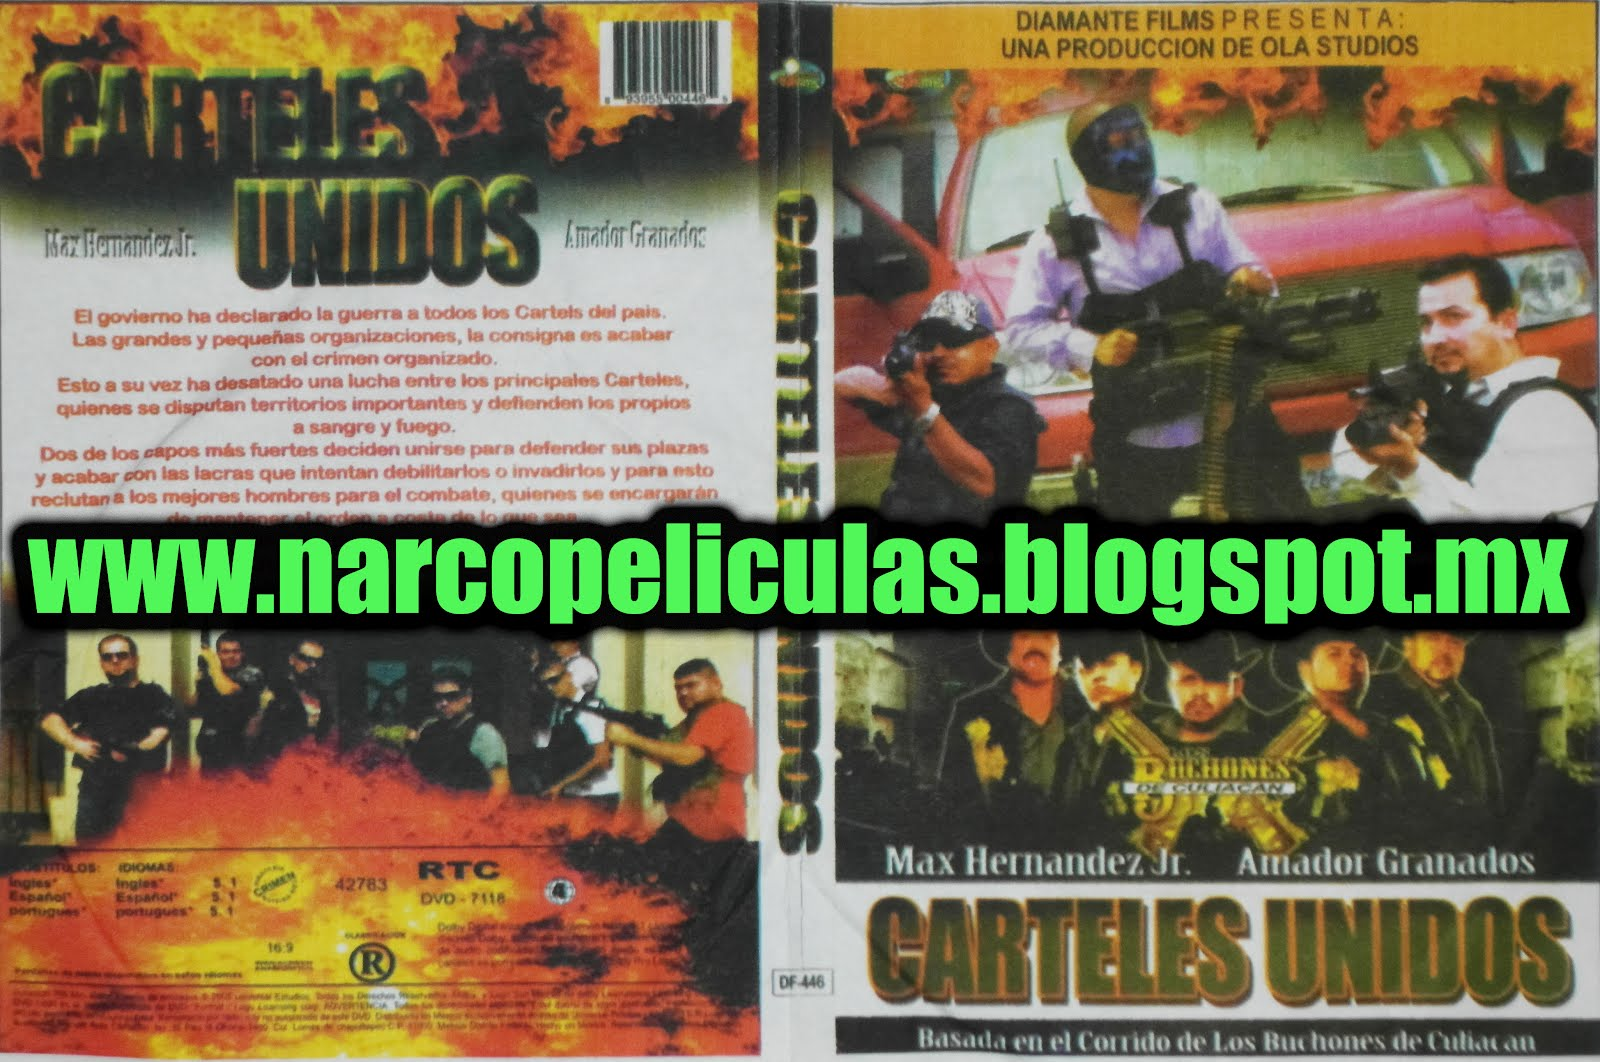 Carteles unidos 2012 - DvDRip.